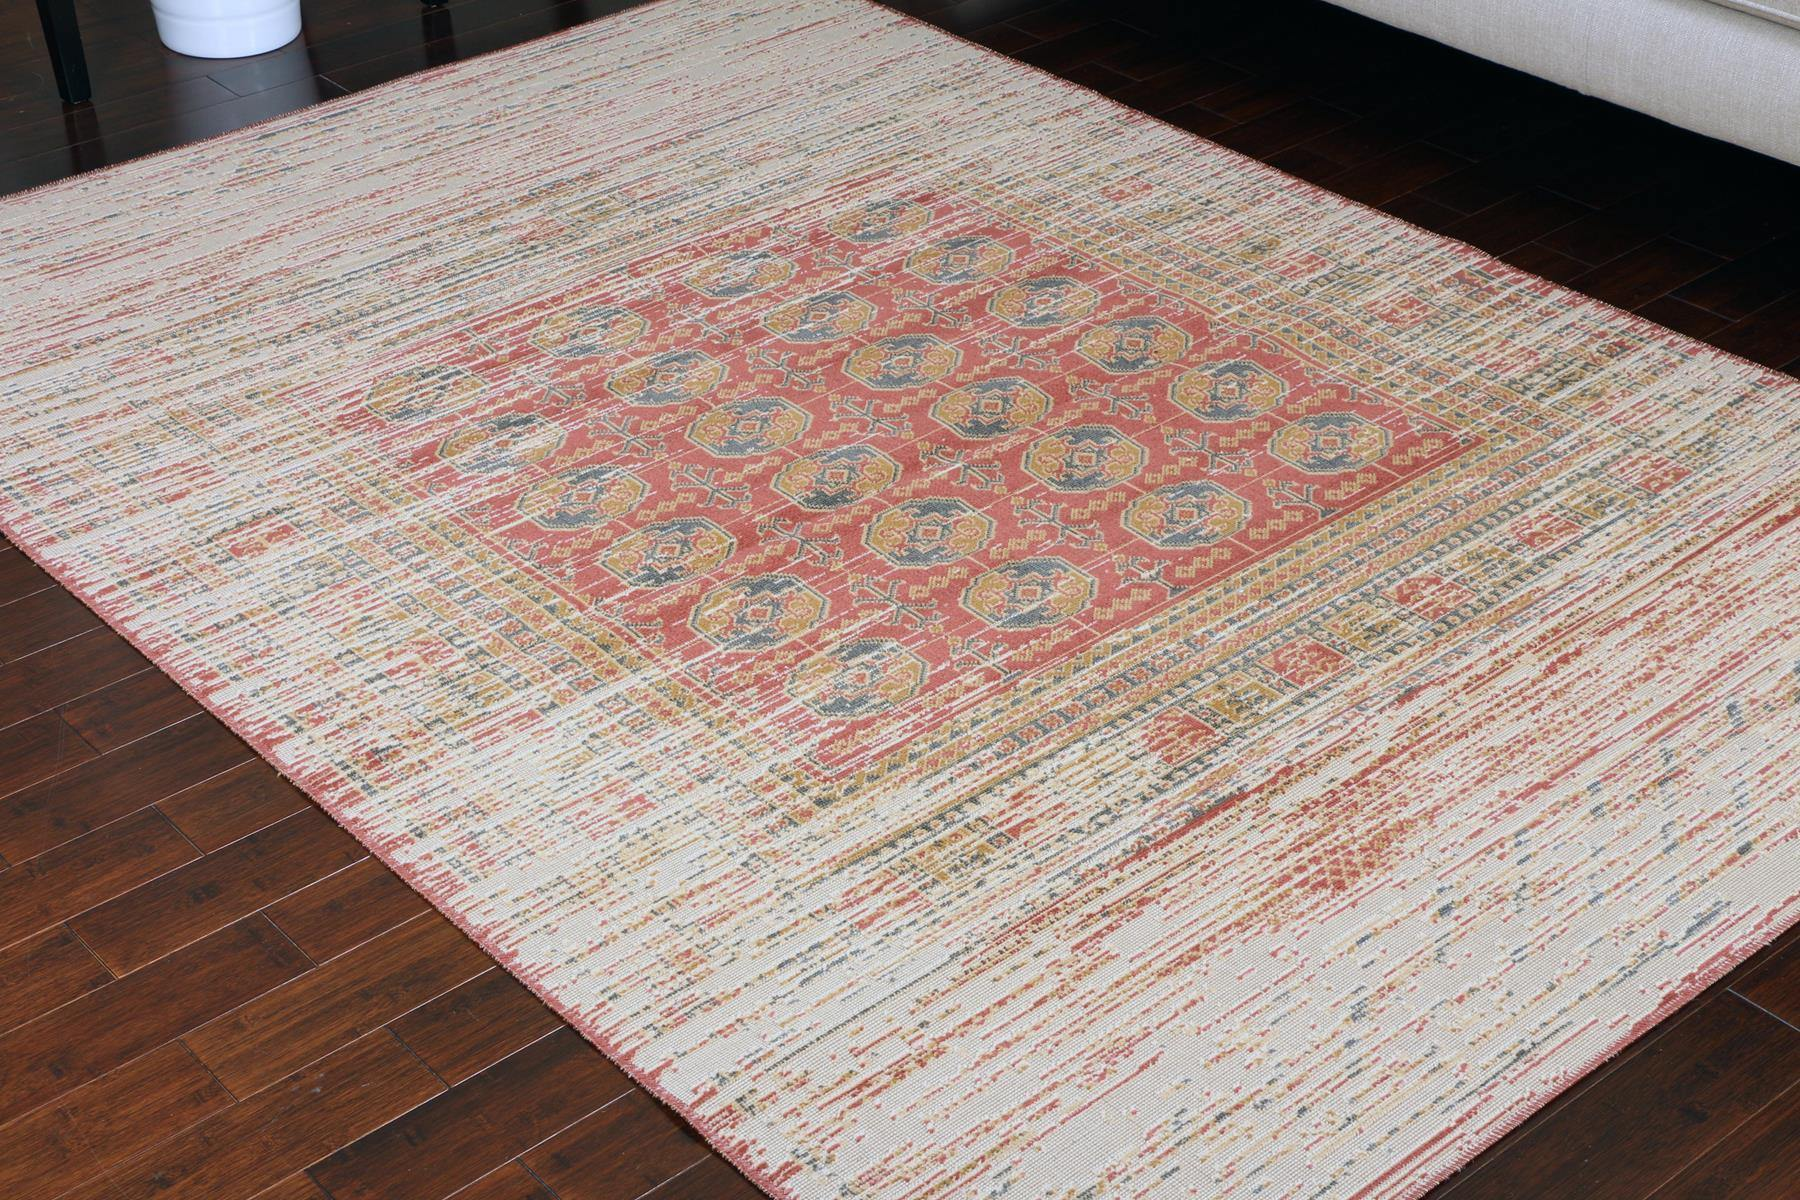 Rustic Beige Charcoal Red Worn Area Rug